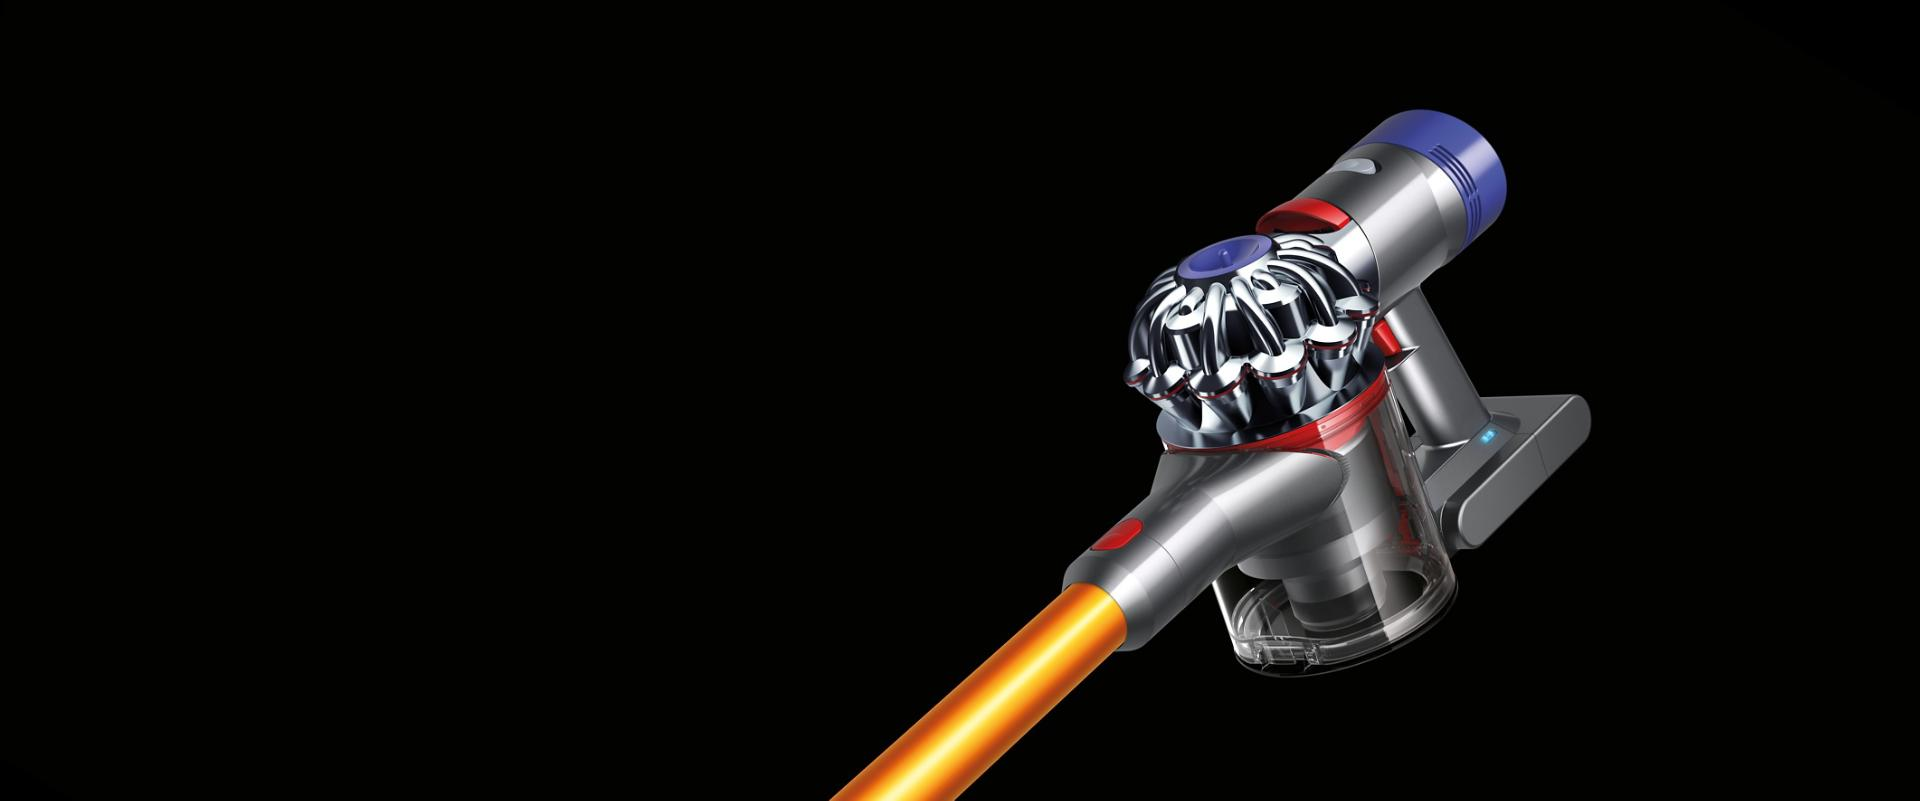 engineering story dyson india v8 cord free vacuum cleaners dyson india. Black Bedroom Furniture Sets. Home Design Ideas